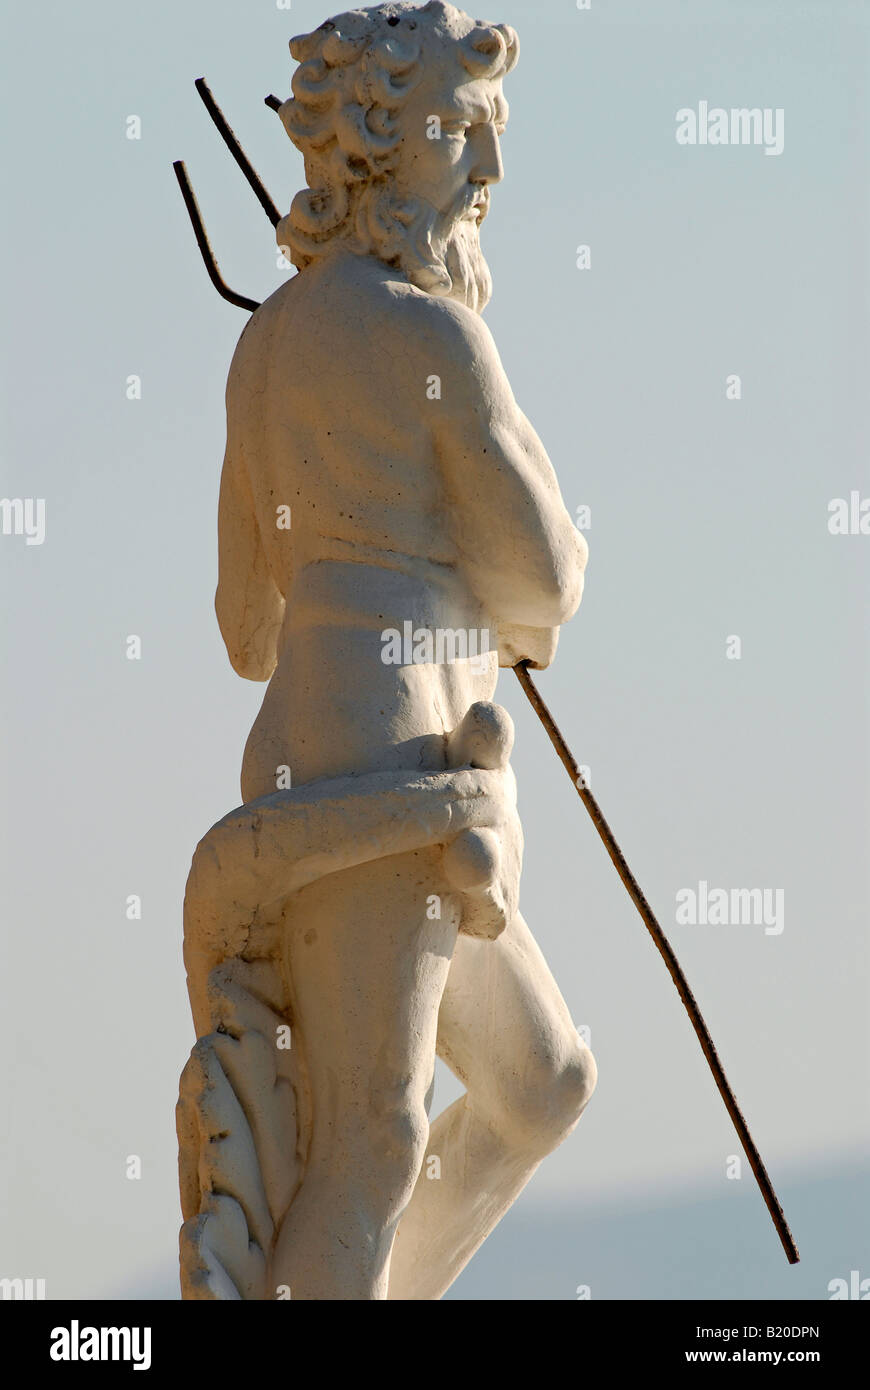 Statue with a replica of Poseidon/Neptune on a hill above Fangri (Fakri) Beach in the west of Samos island, Greece. - Stock Image